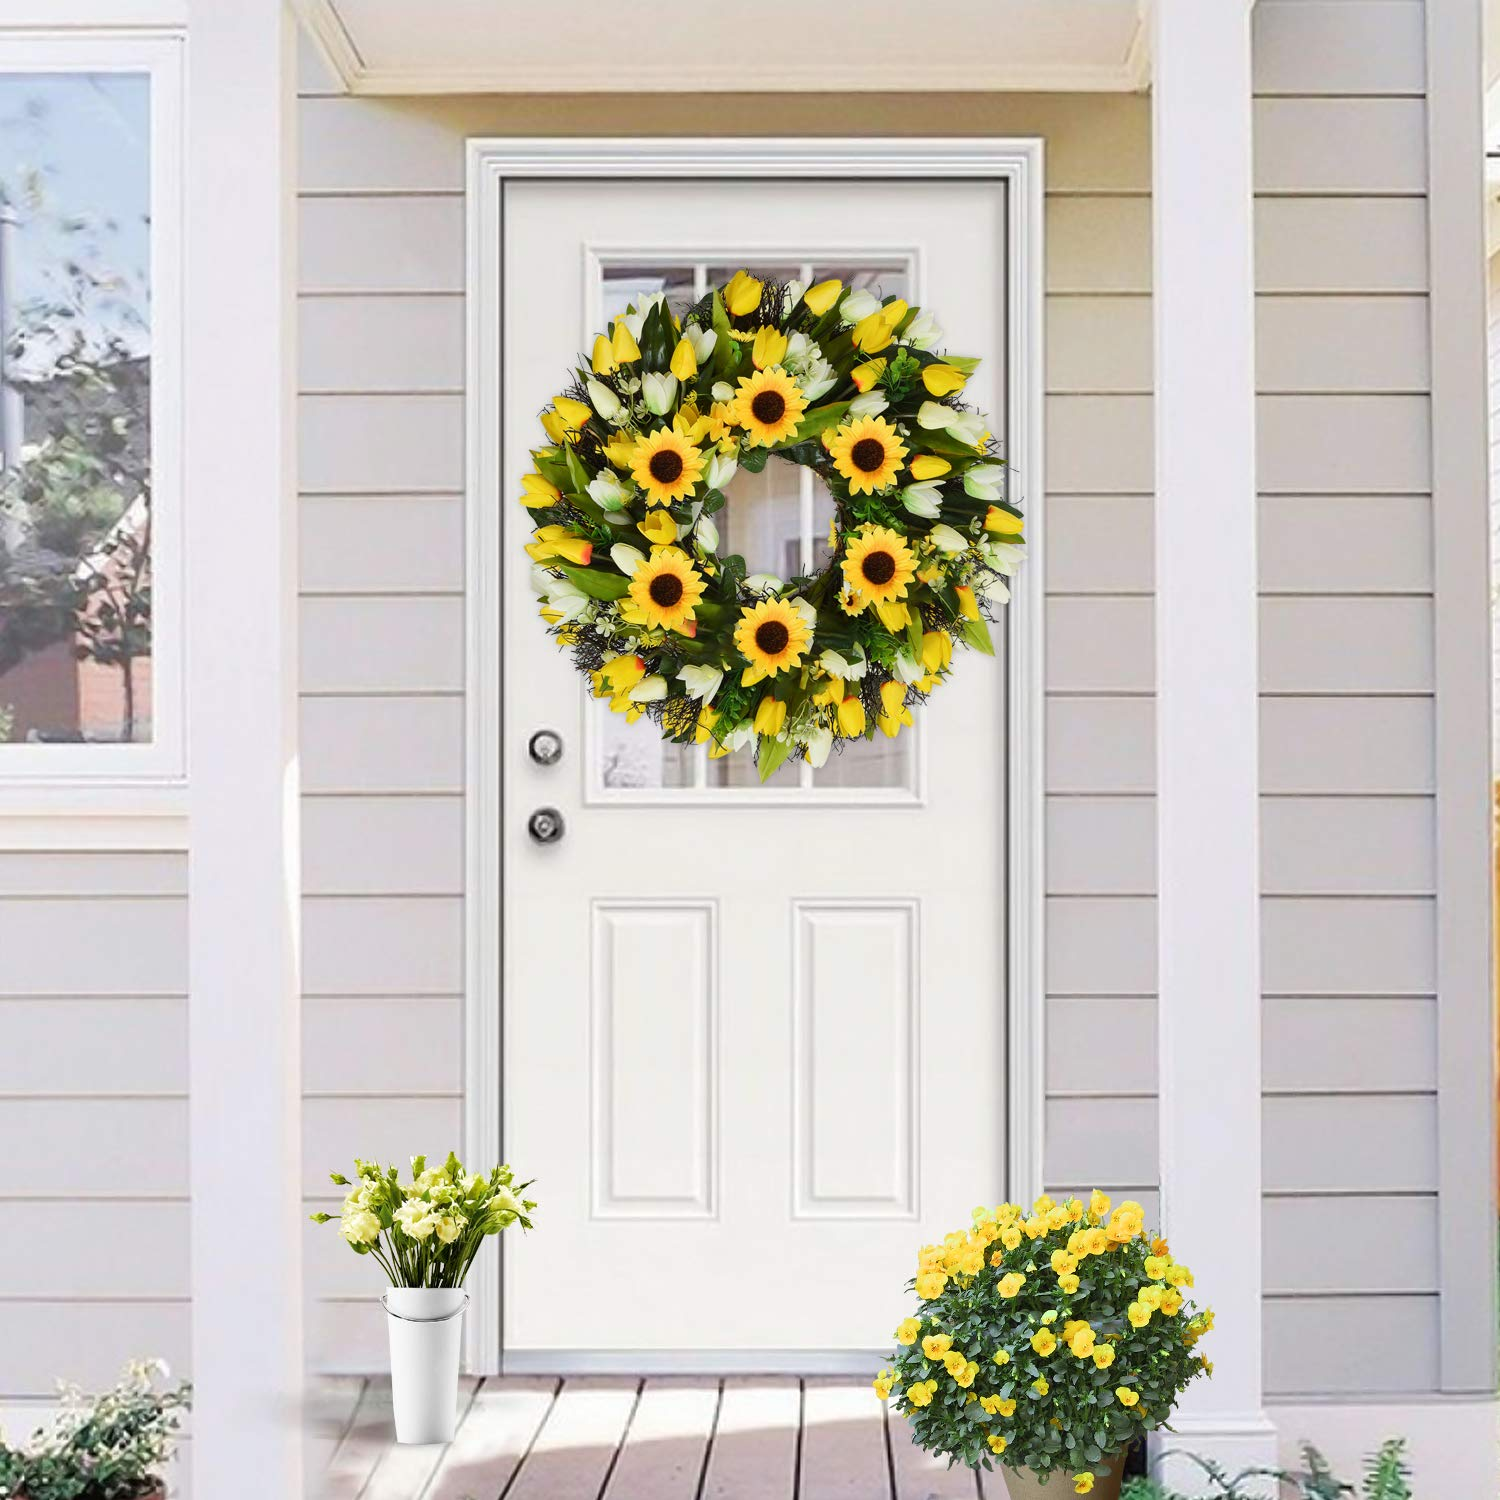 Wanna Cul 22 Spring Tulip Wreath For Front Door With Sunflower For Mother S Day Yellow And White Summer Floral Door Wreath With Green Leaves For Wedding Wall Home Decorations